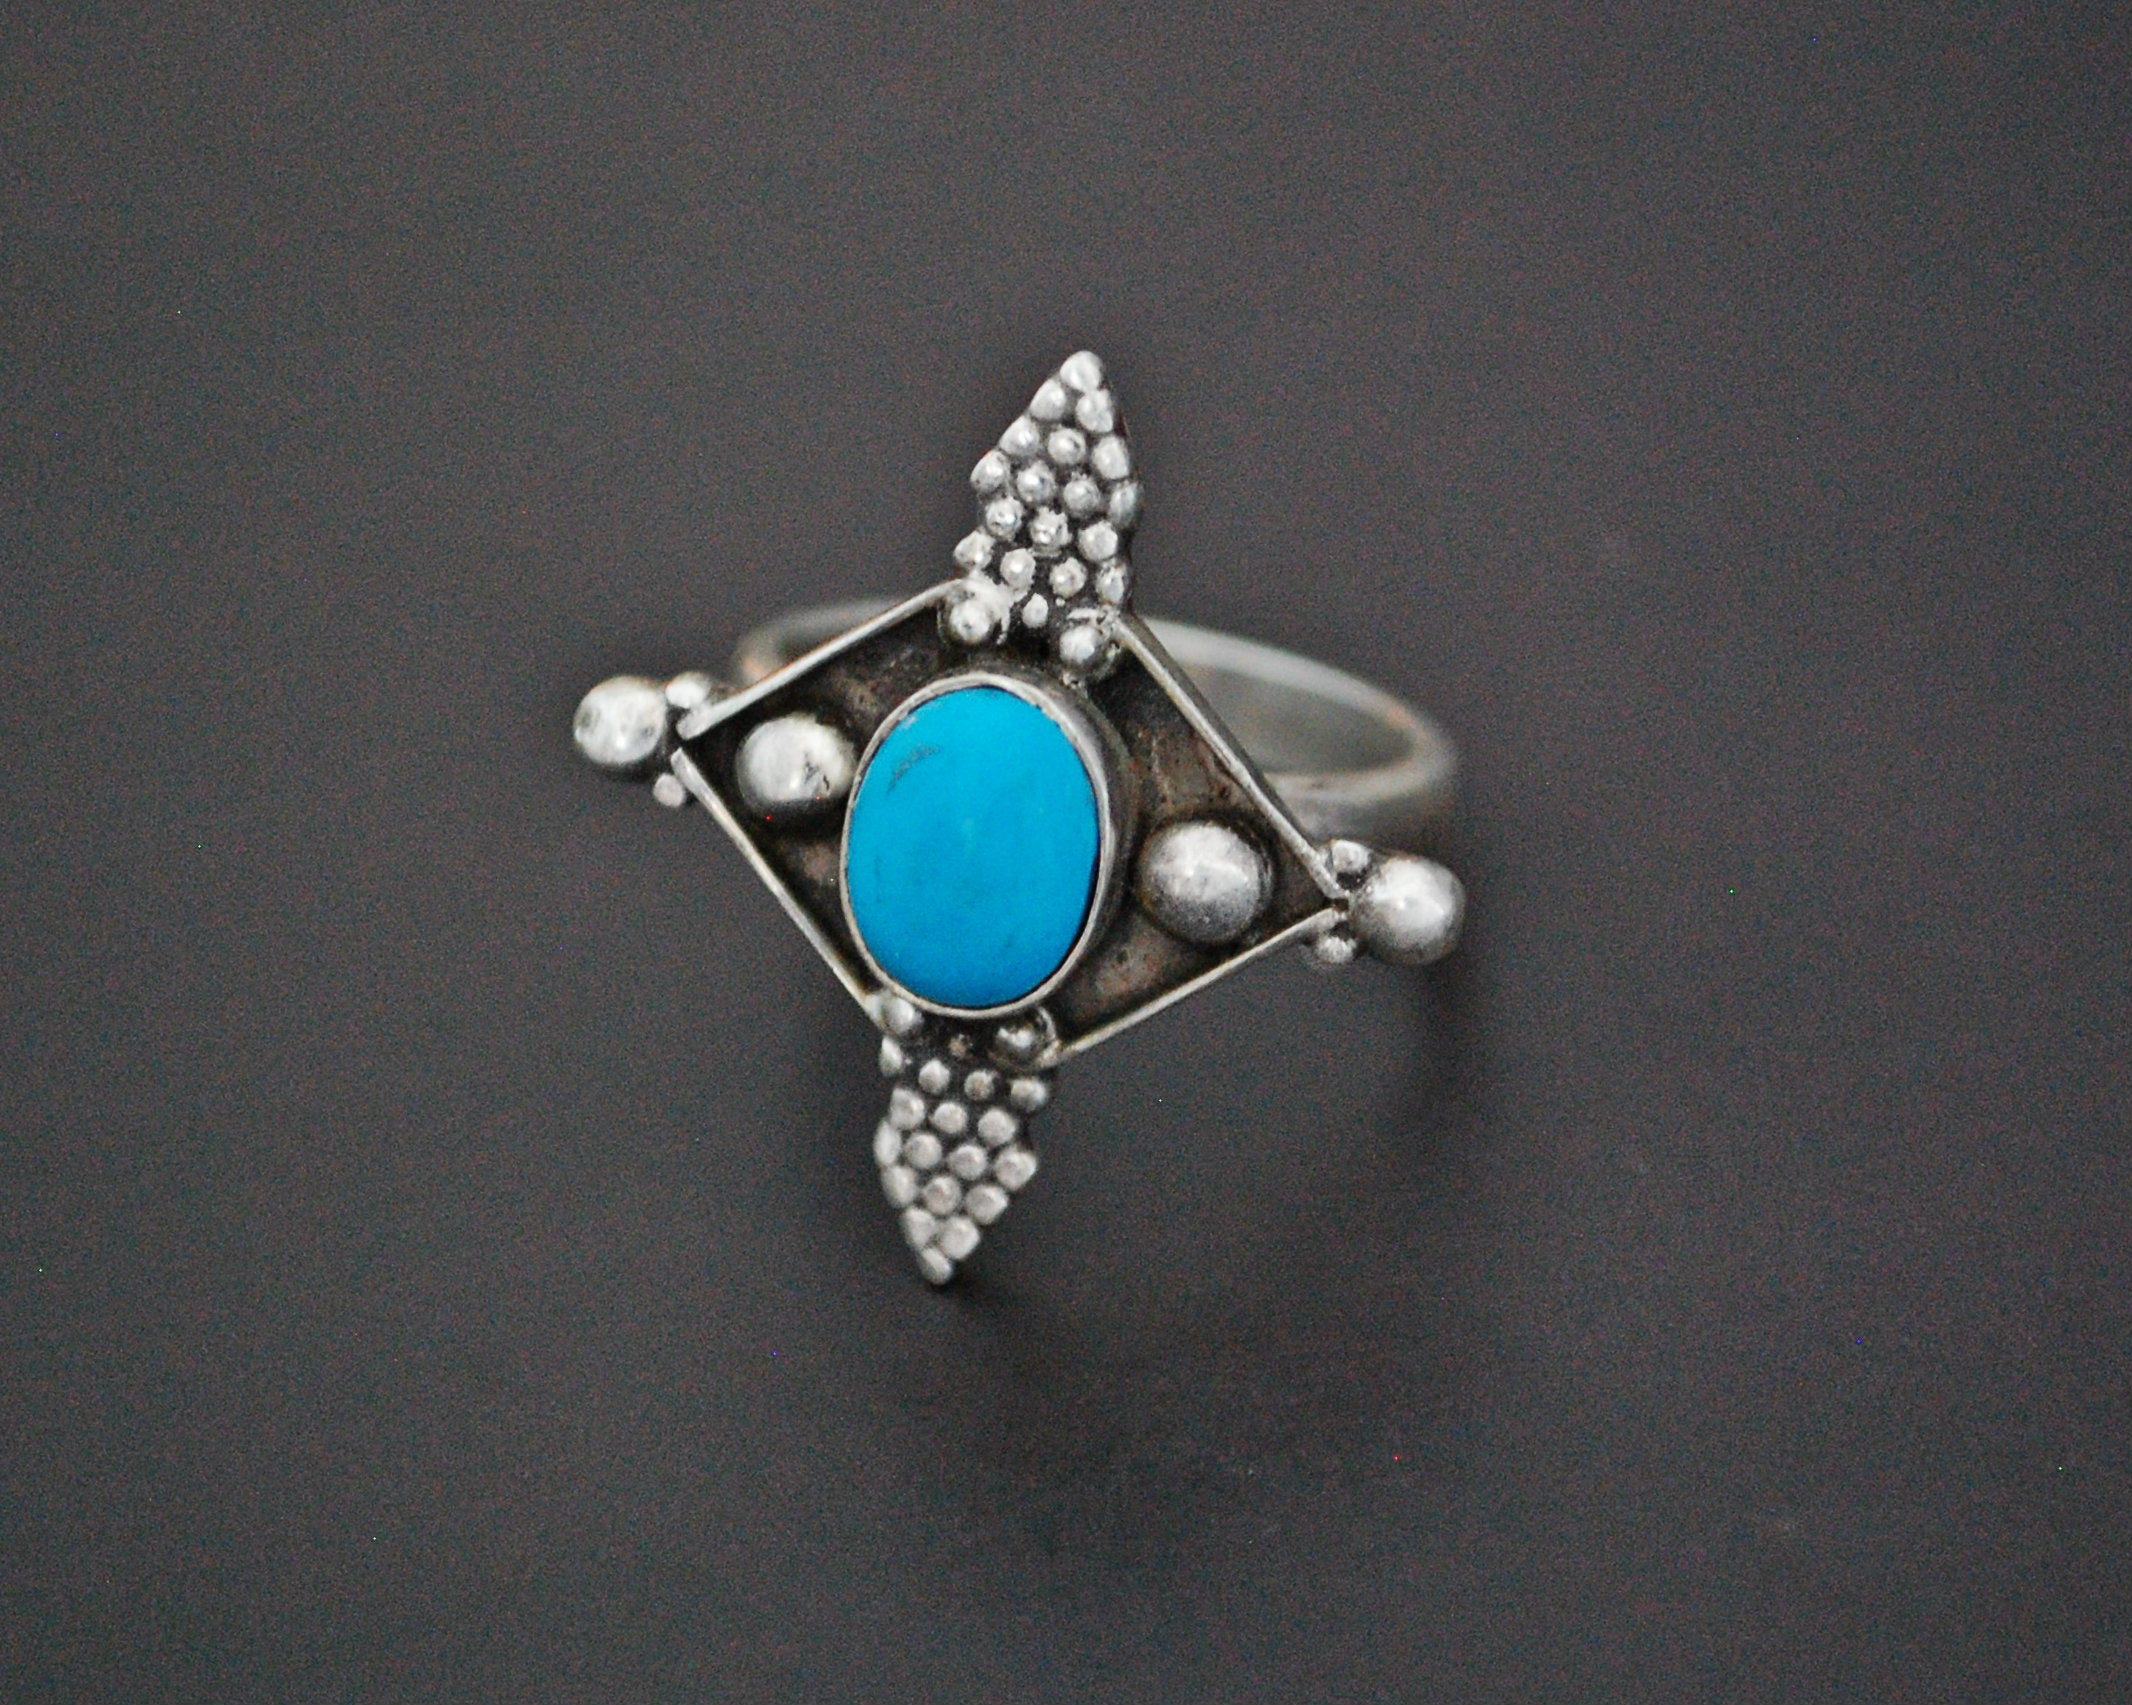 Ethnic Turquoise Ring from India - Size 7.5